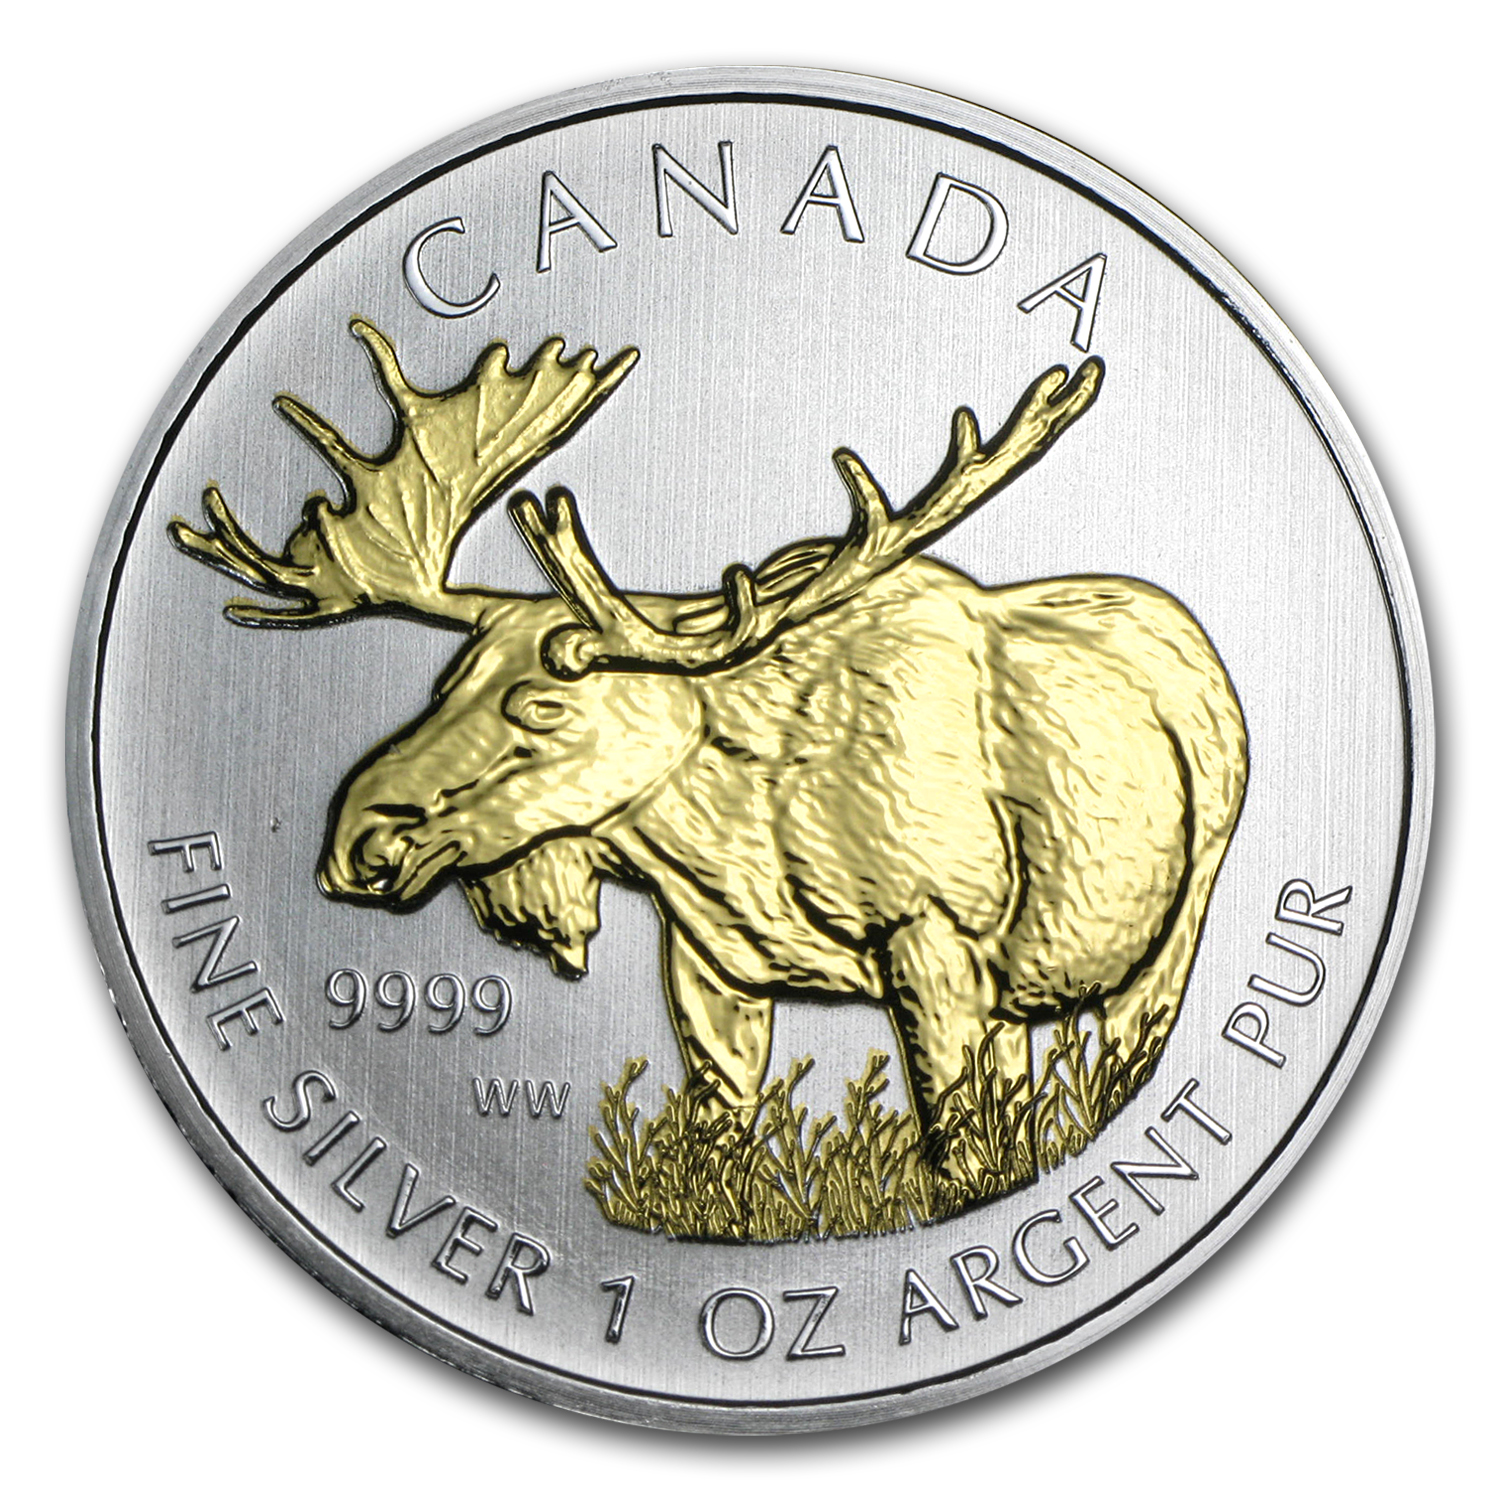 2012 1 oz Silver Canadian Wildlife Series - Moose - Gilded